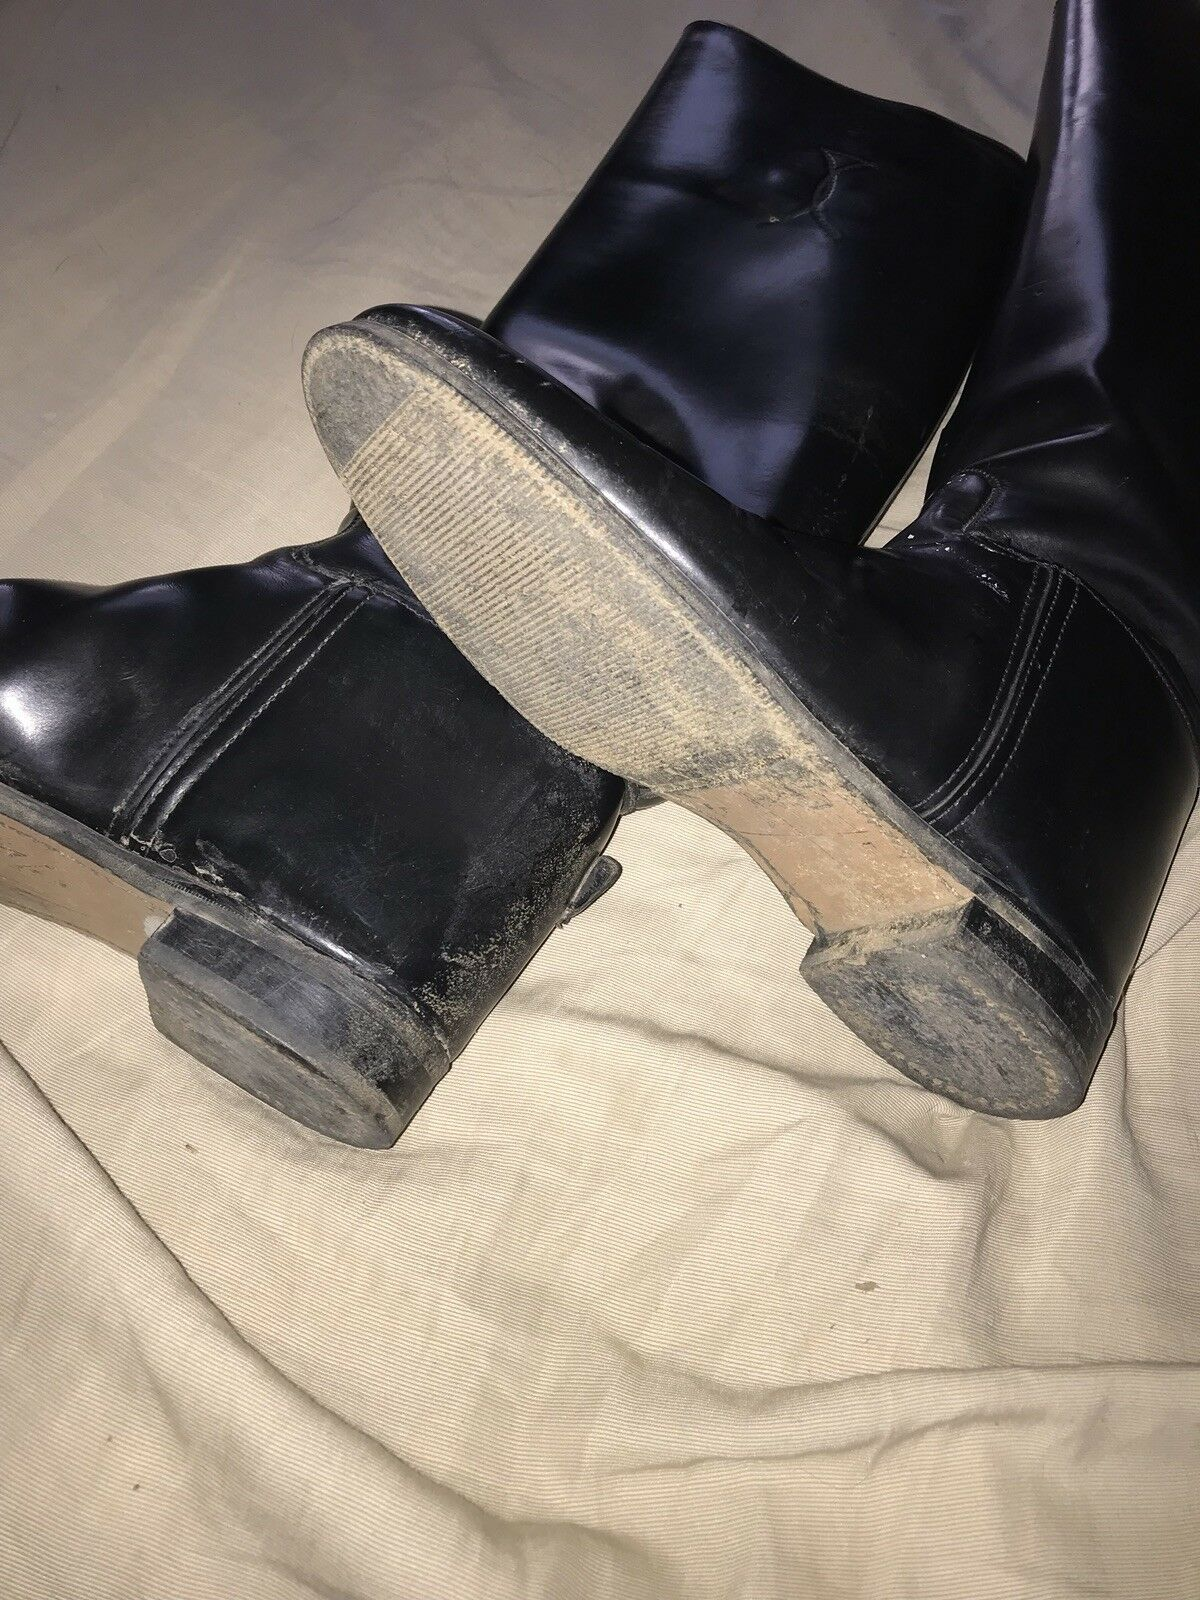 Imperial Leather Riding Riding Riding Boots Size 6 Made in England 5a9d7c